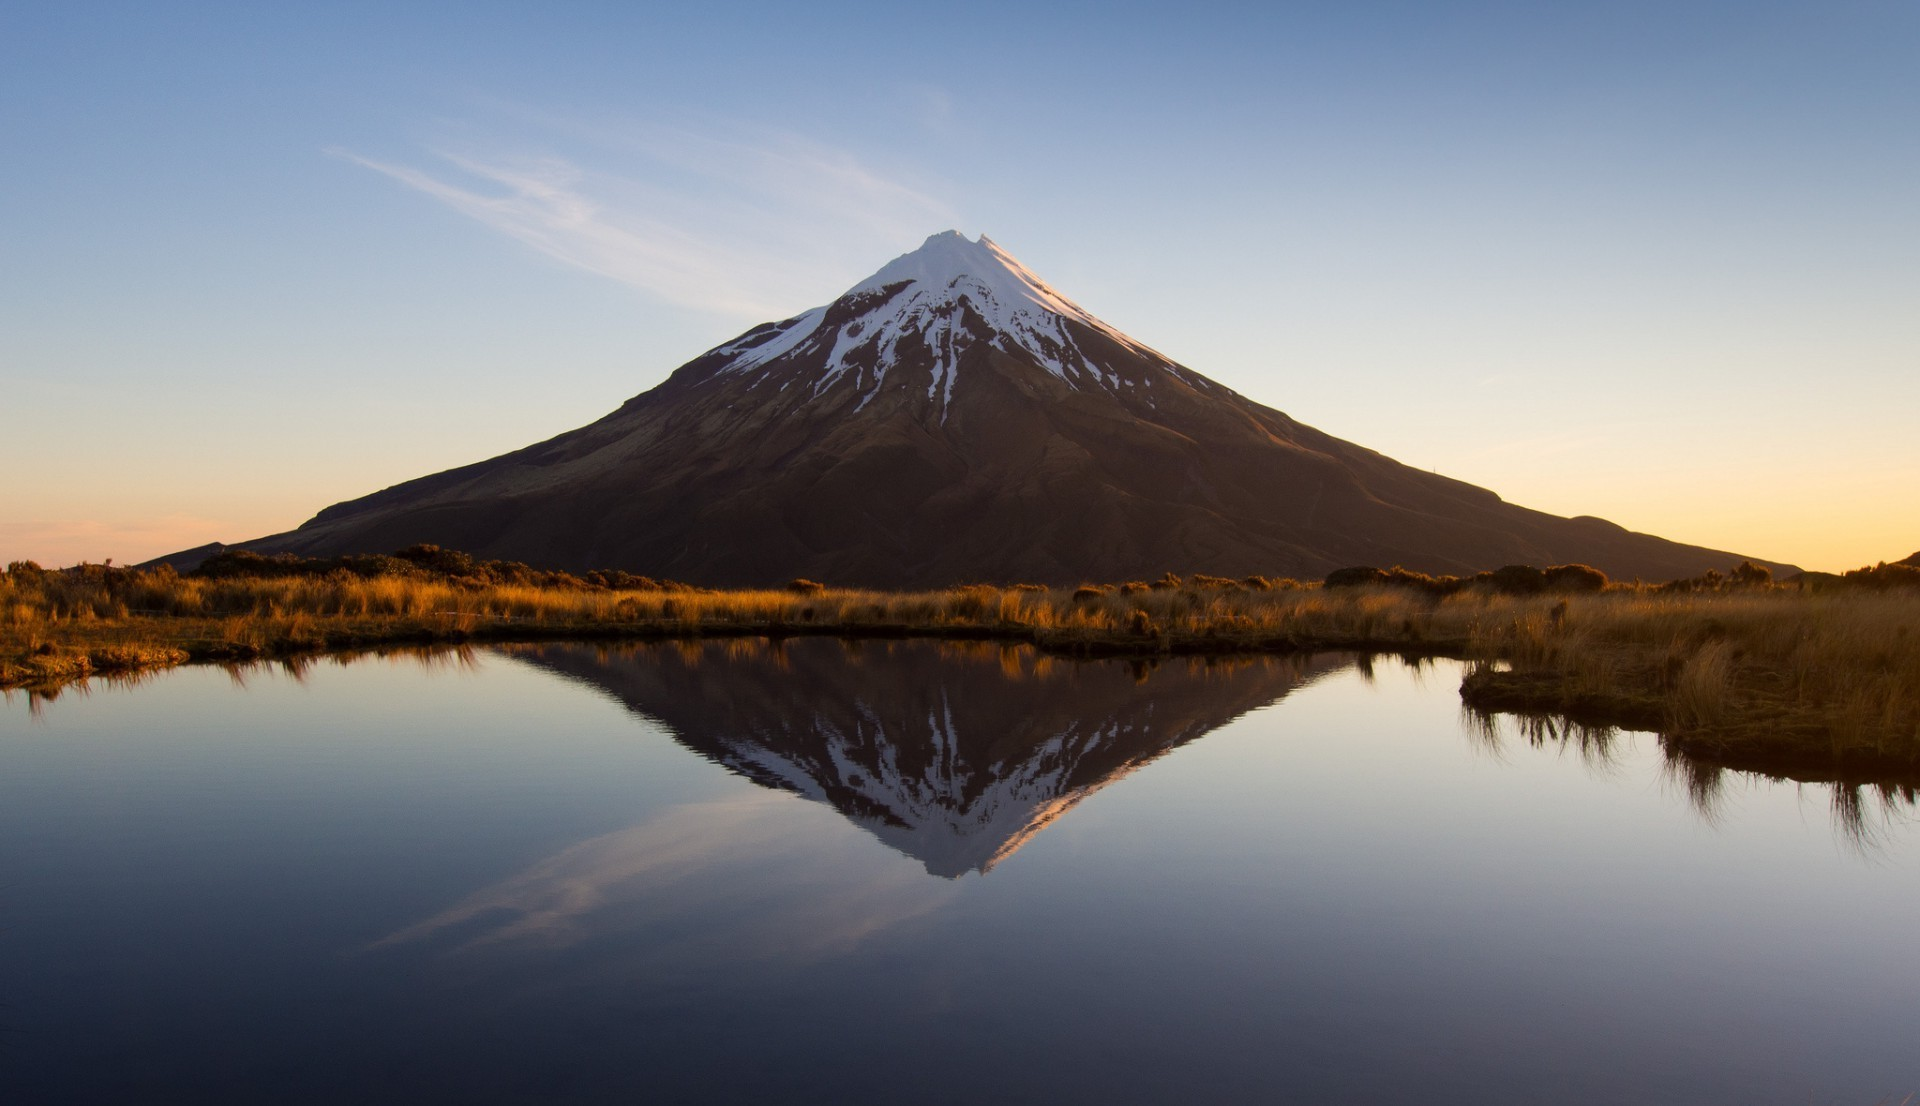 Taranaki volcano in New Zealand